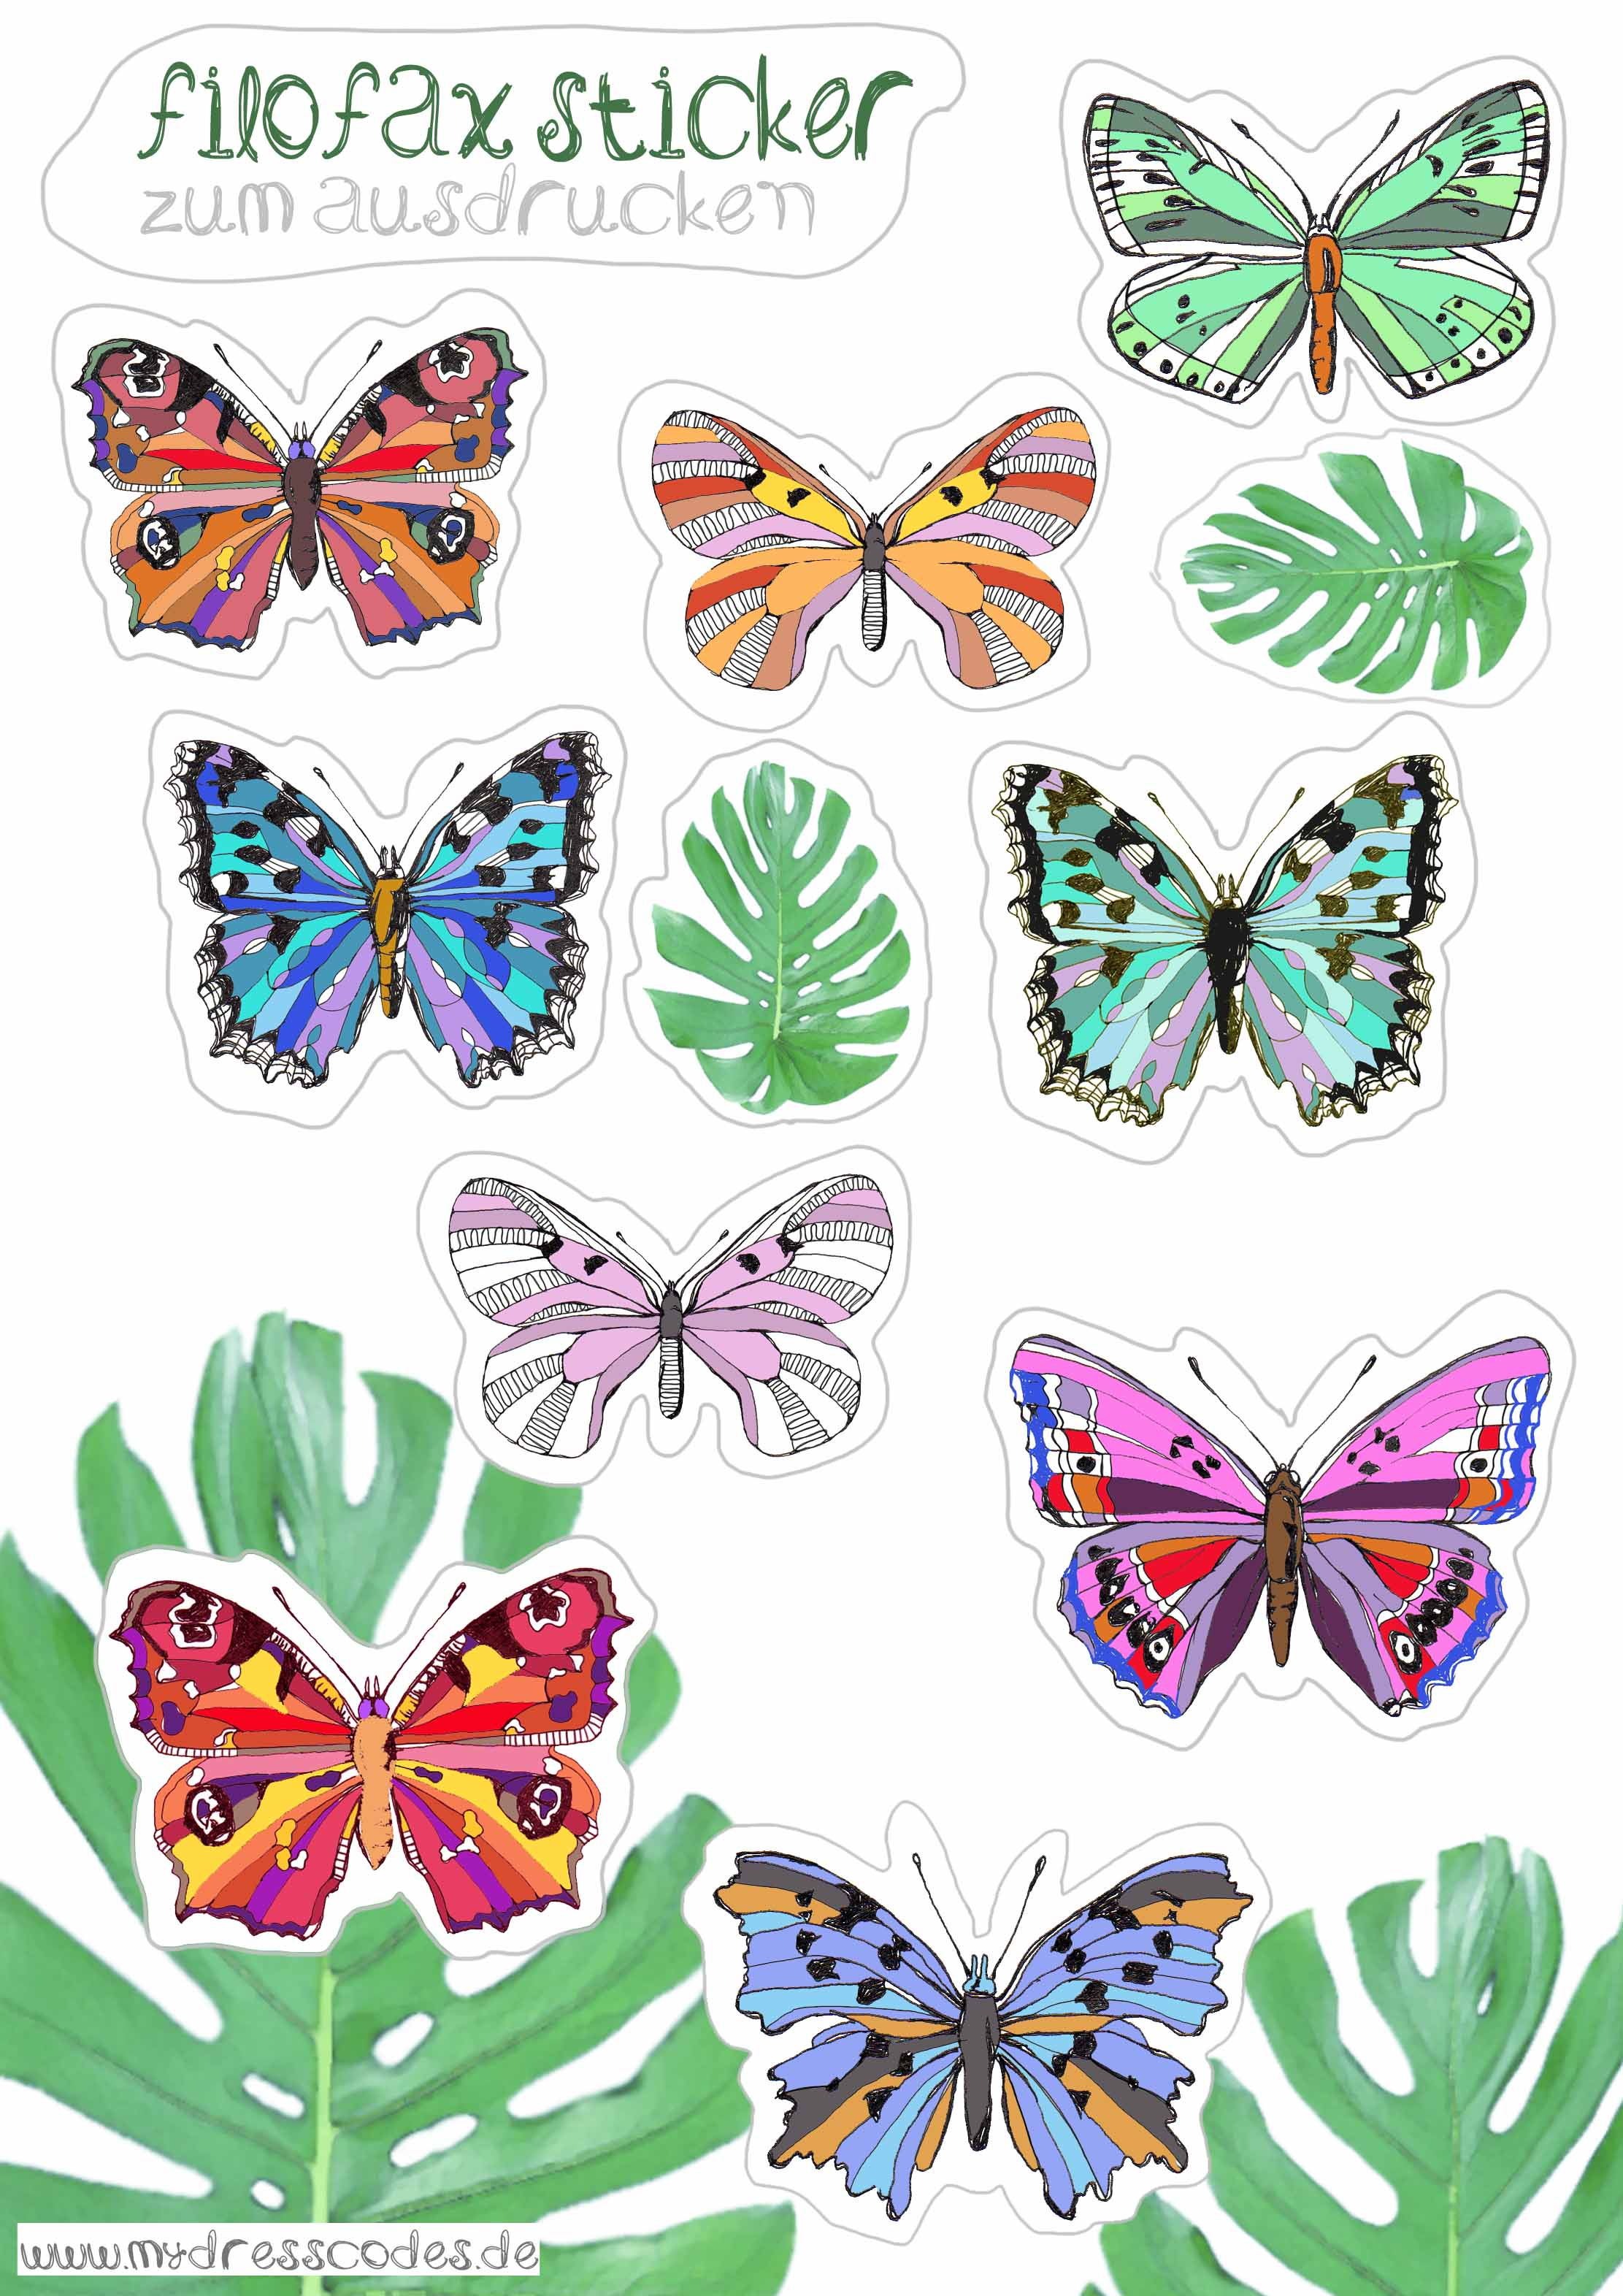 Filofax sticker freebies botanic floral butterflies